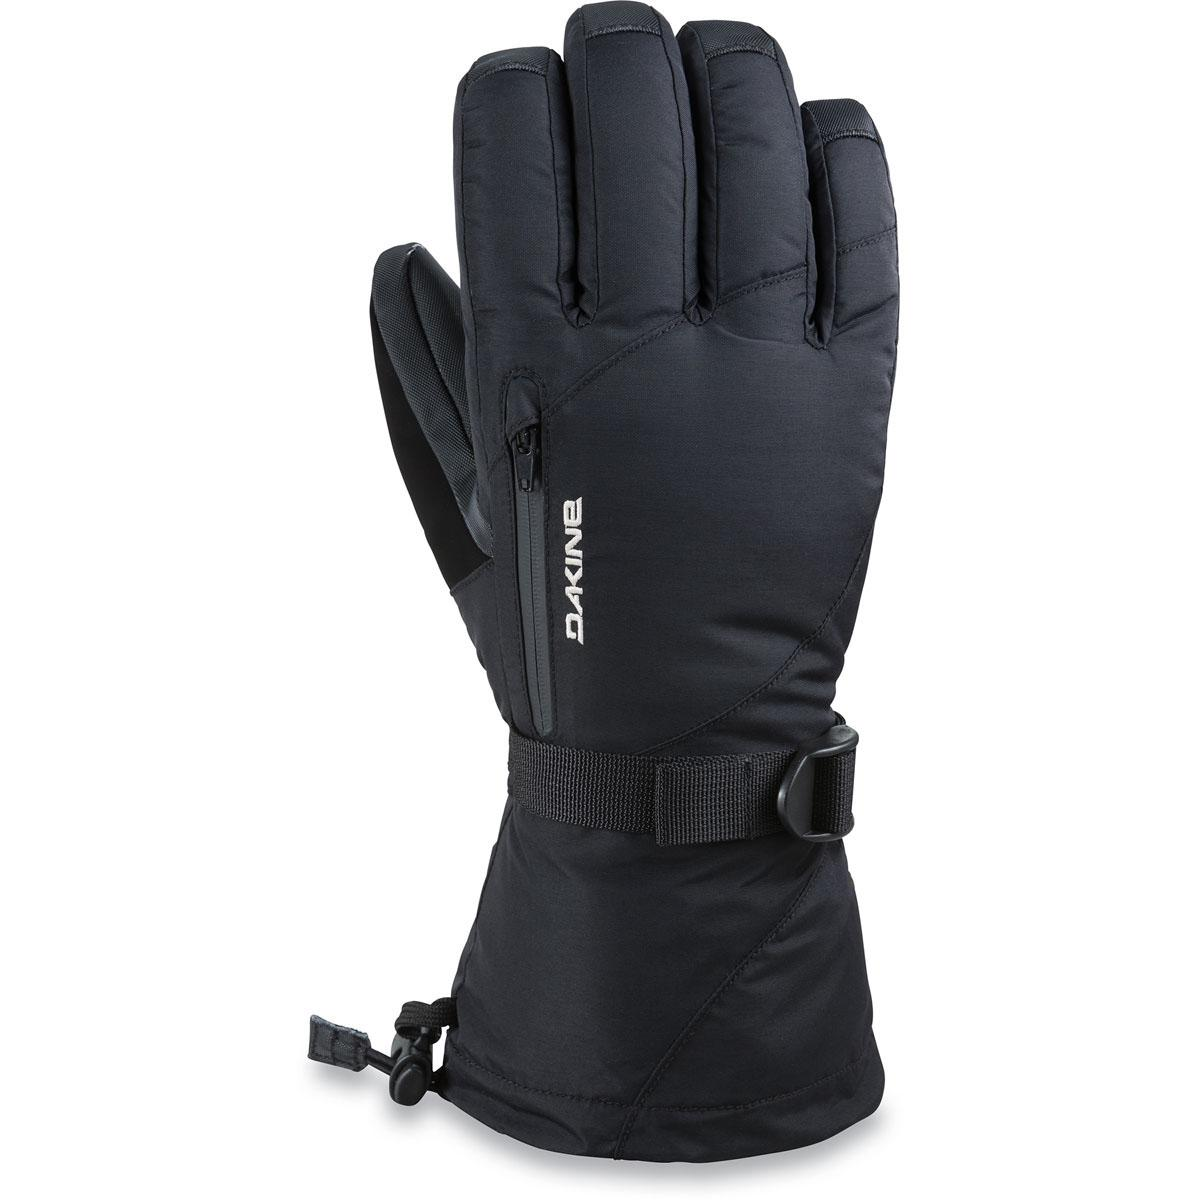 Dakine Sequoia glove in Black